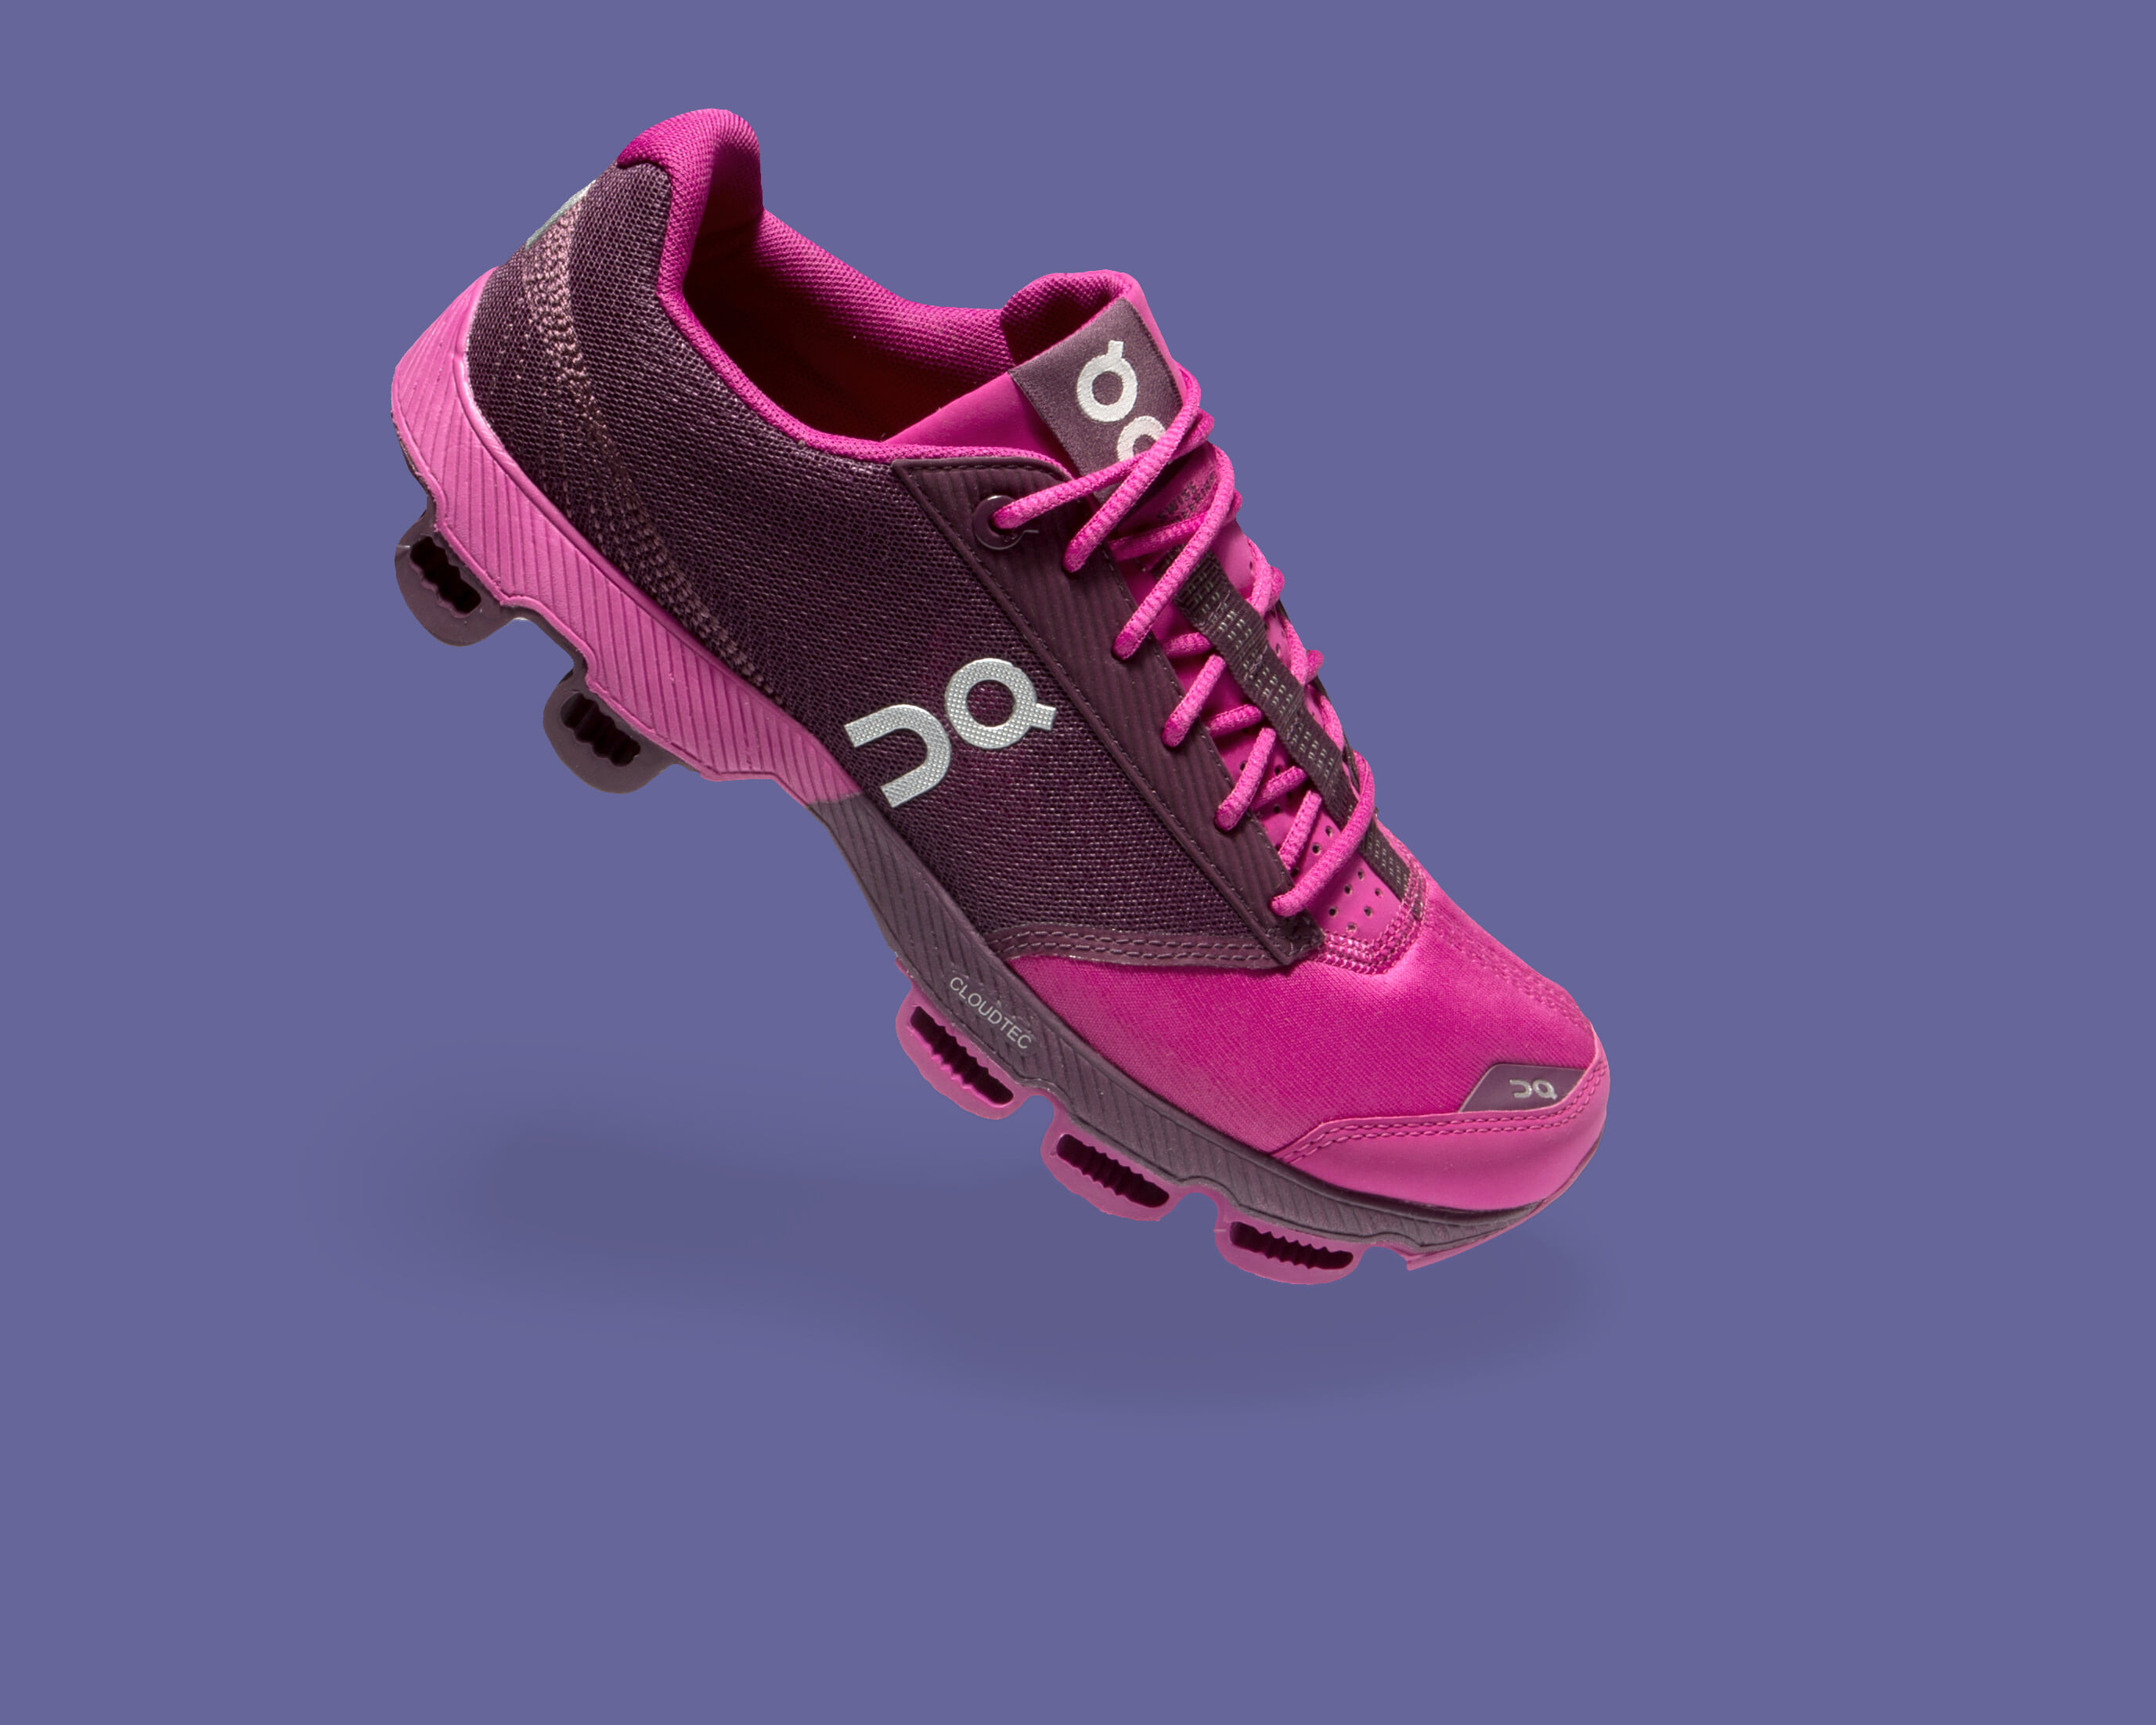 Cloudster%20magenta%20berry